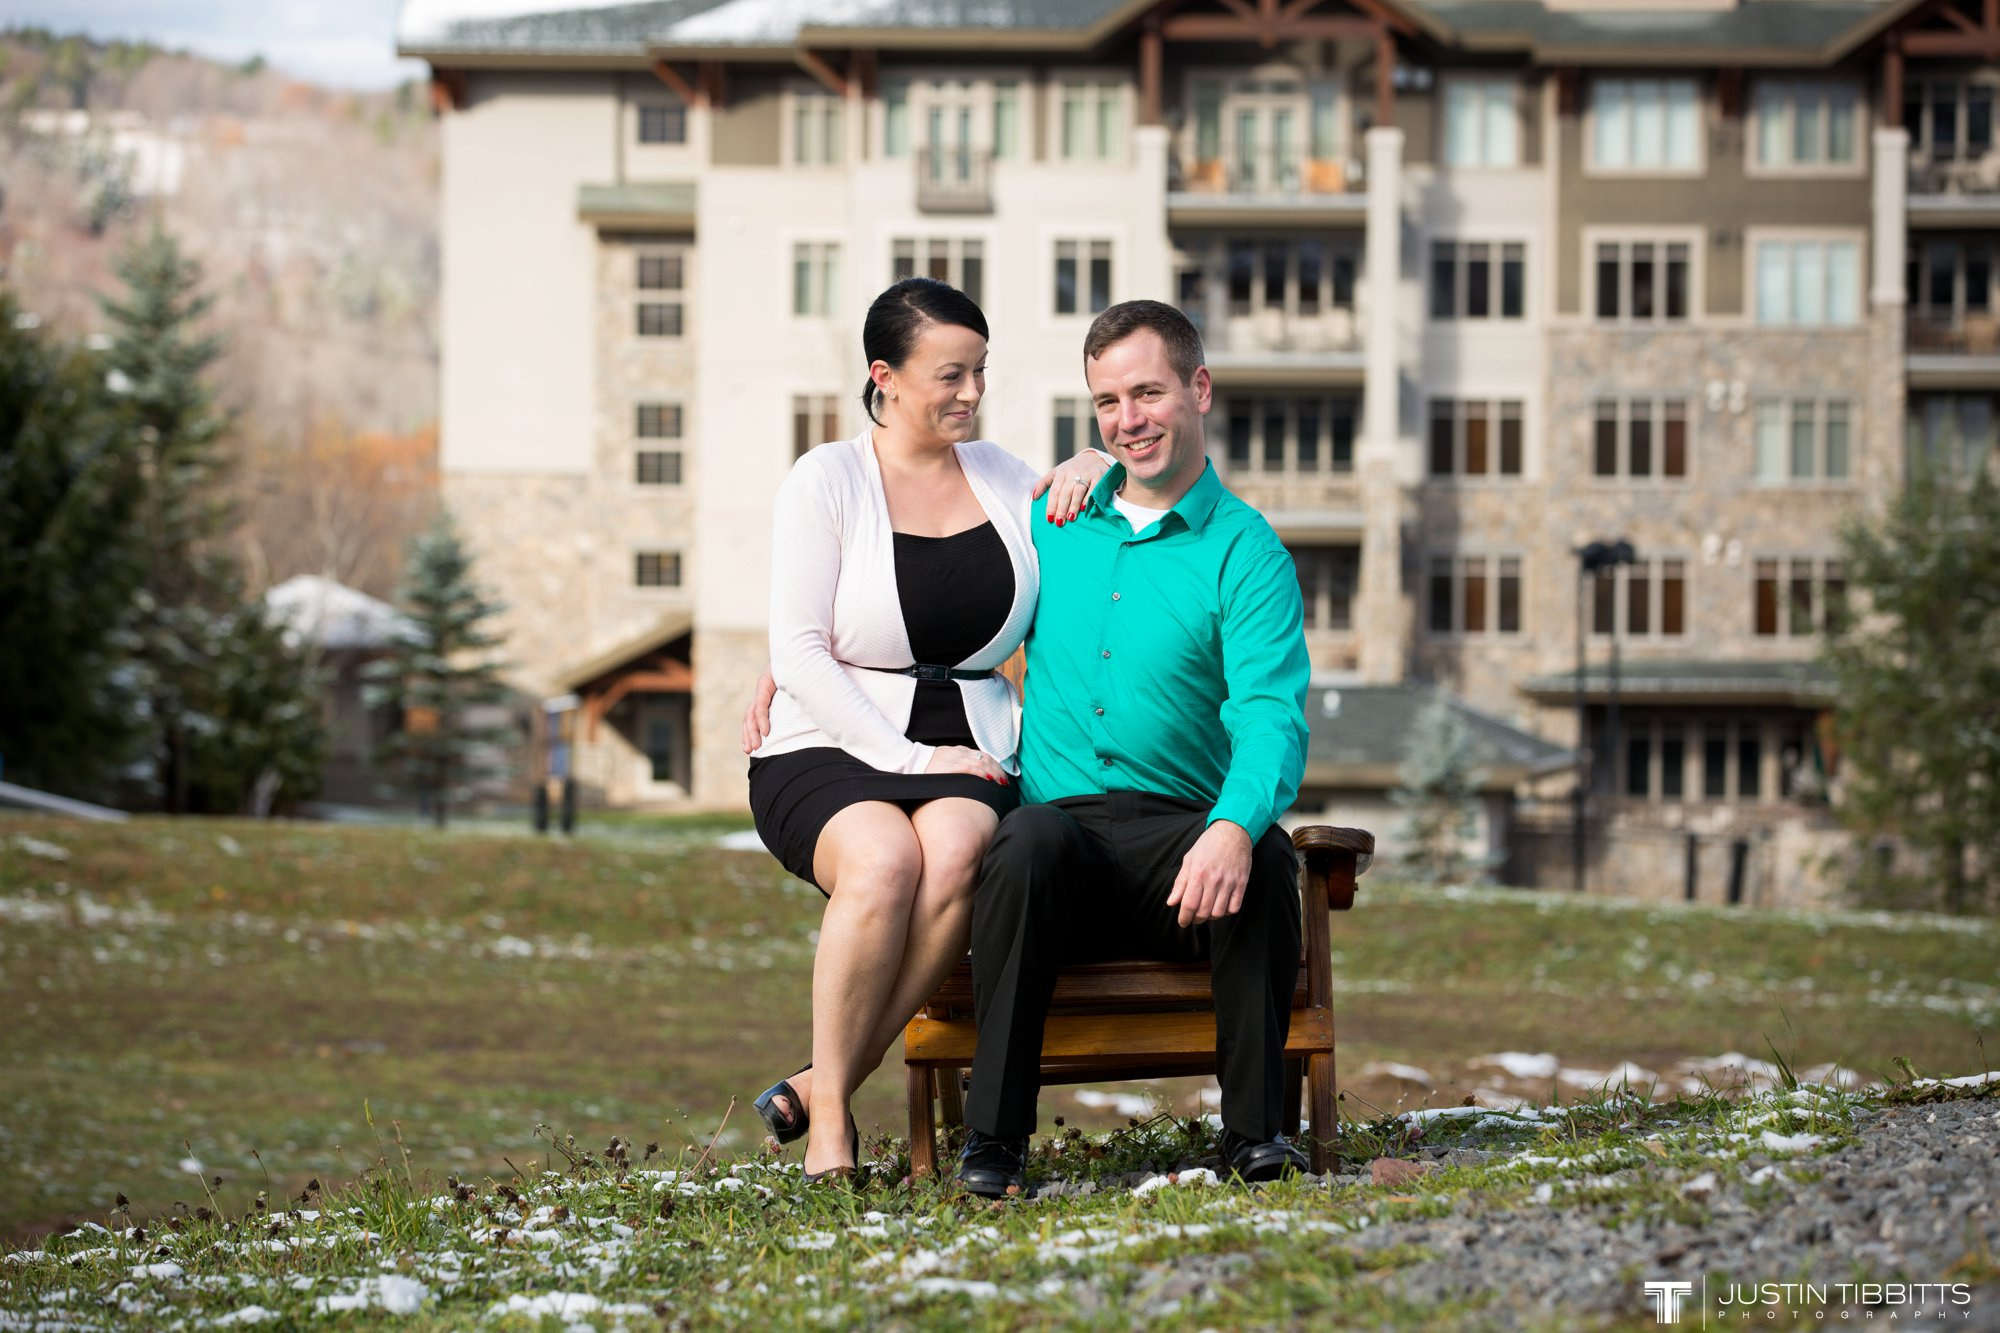 Justin Tibbitts Photography Kristie and Gregs Windham Mountain Resort Engagement Shoot-44